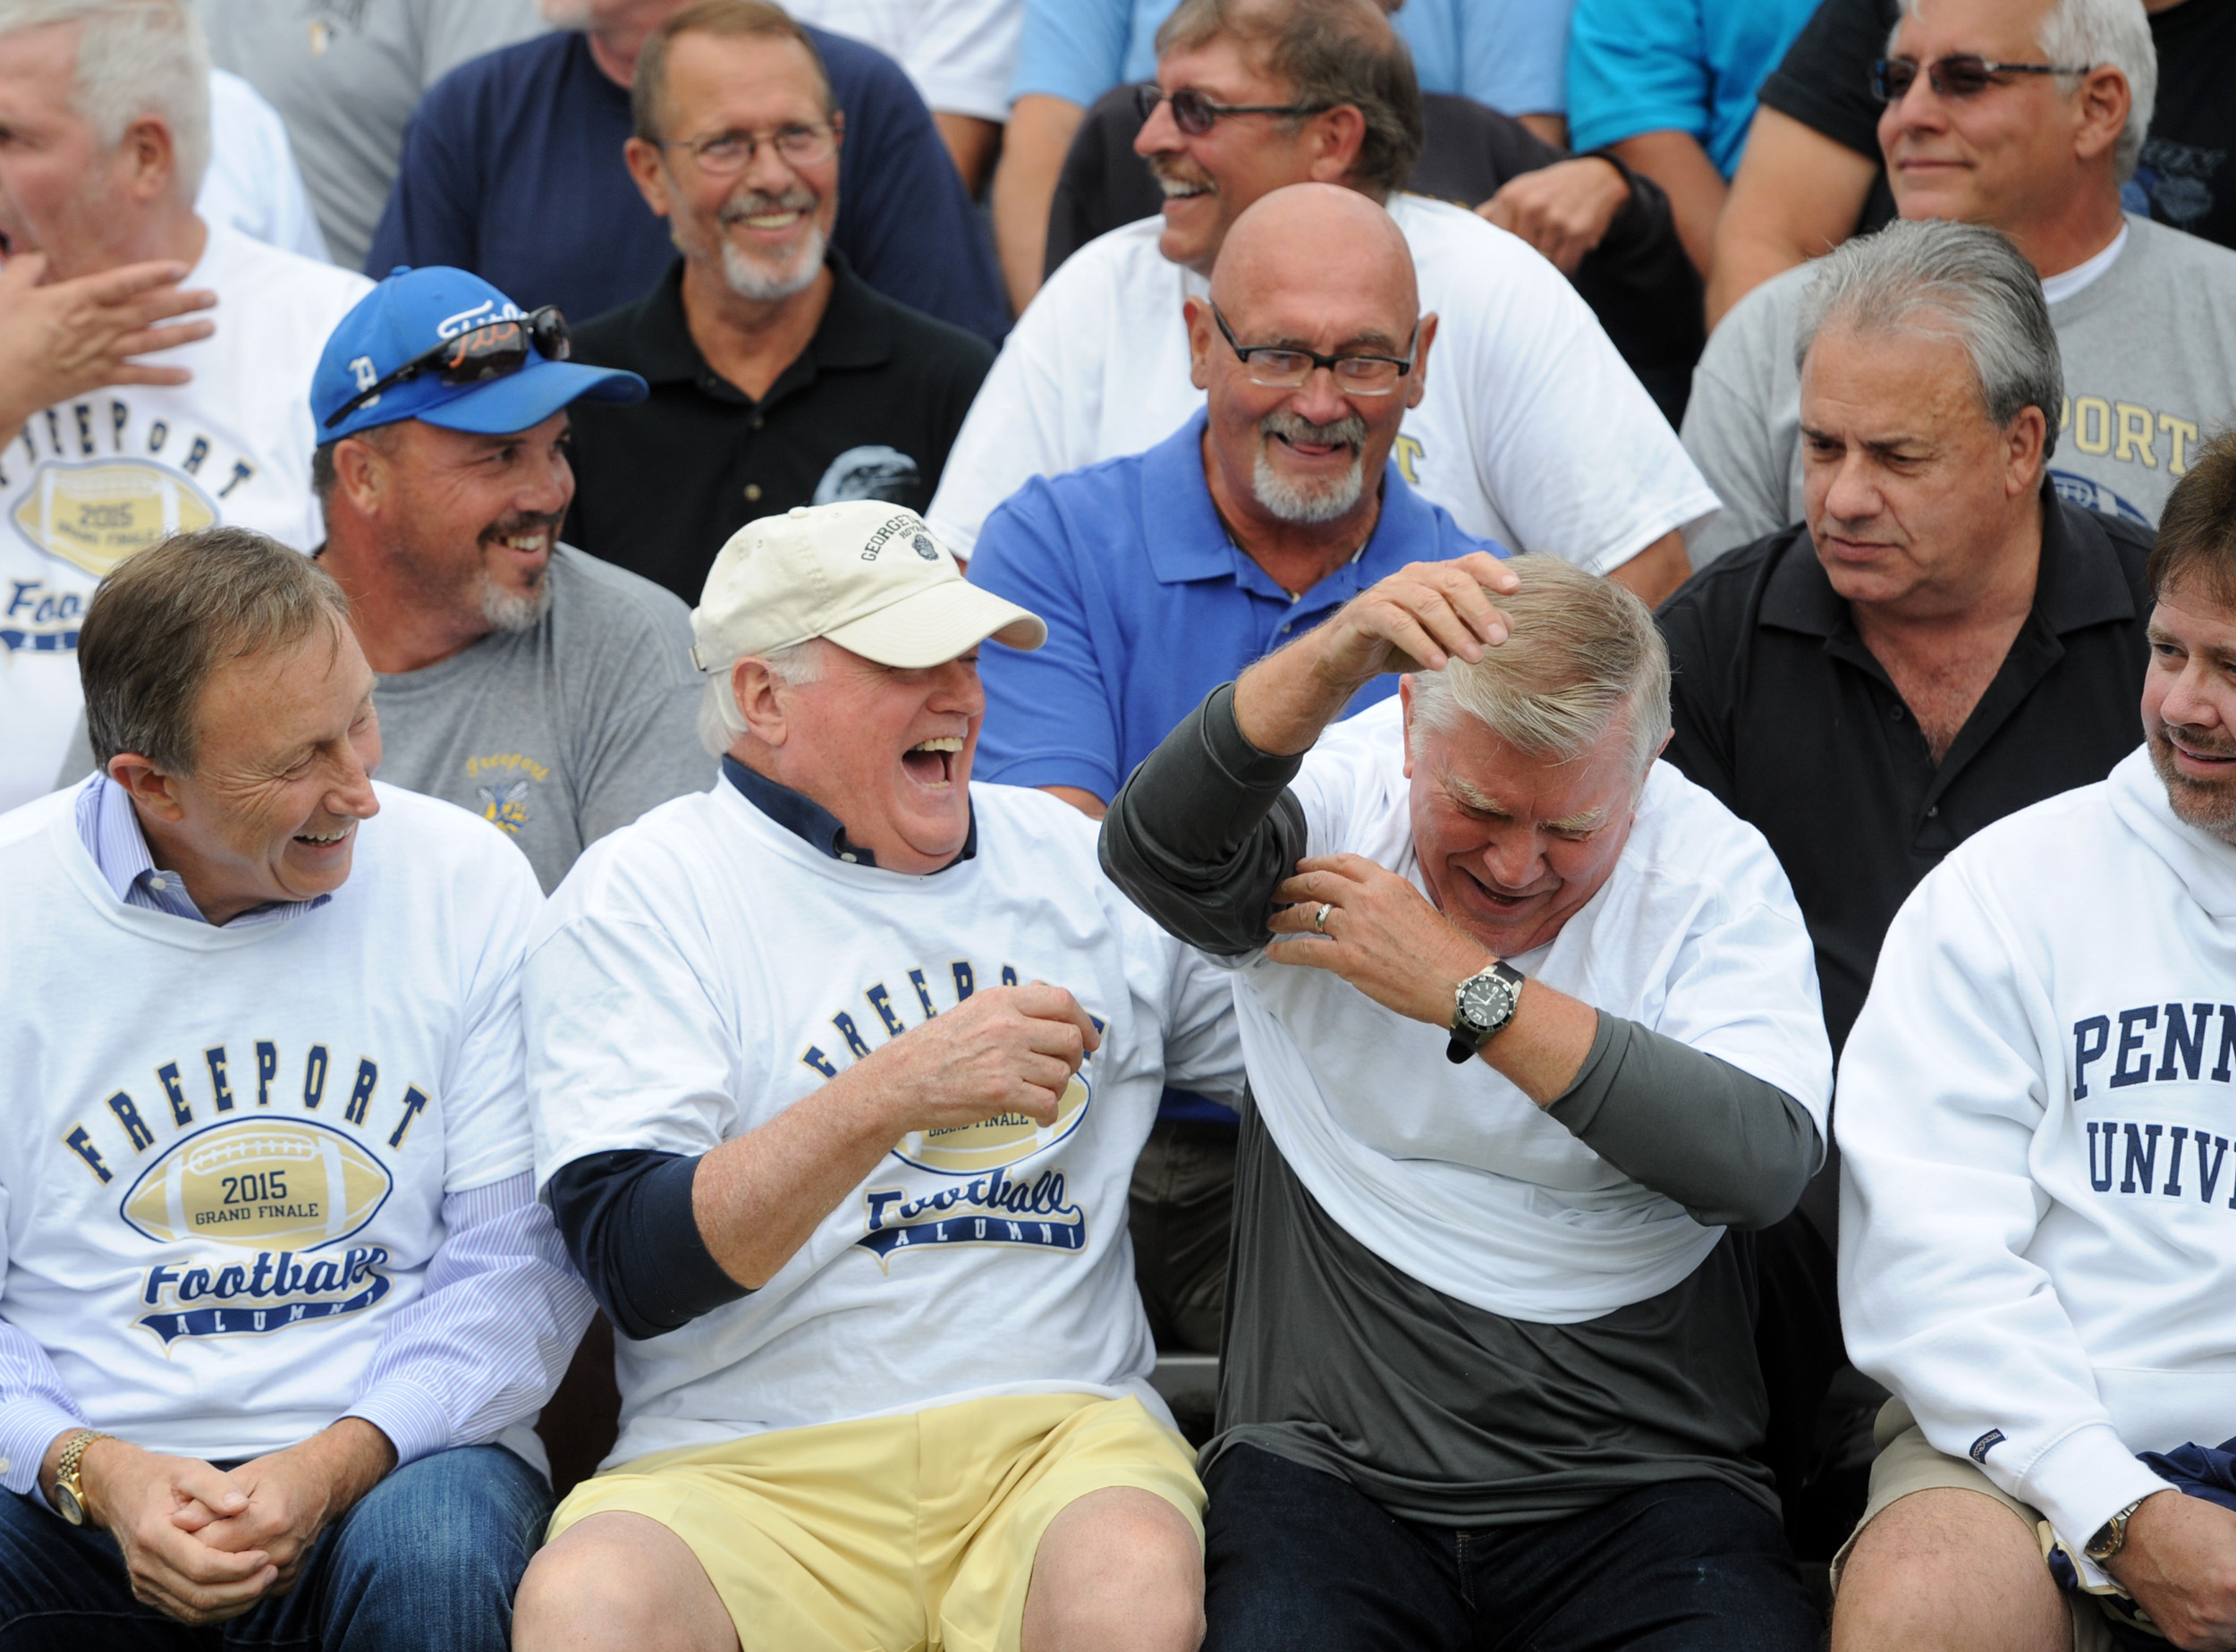 Freeport High School 1964 graduate Chip Young laughs after pointing out that his cousin, 1959 graduate Tom Fair, of Buffalo Township, put his shirt on backwards while waiting for a posed photo of Freeport High School alumnus at James Swartz Stadium in Freeport on Wednesday, Aug. 26, 2015. This will be the final season of football to be played at the stadium.